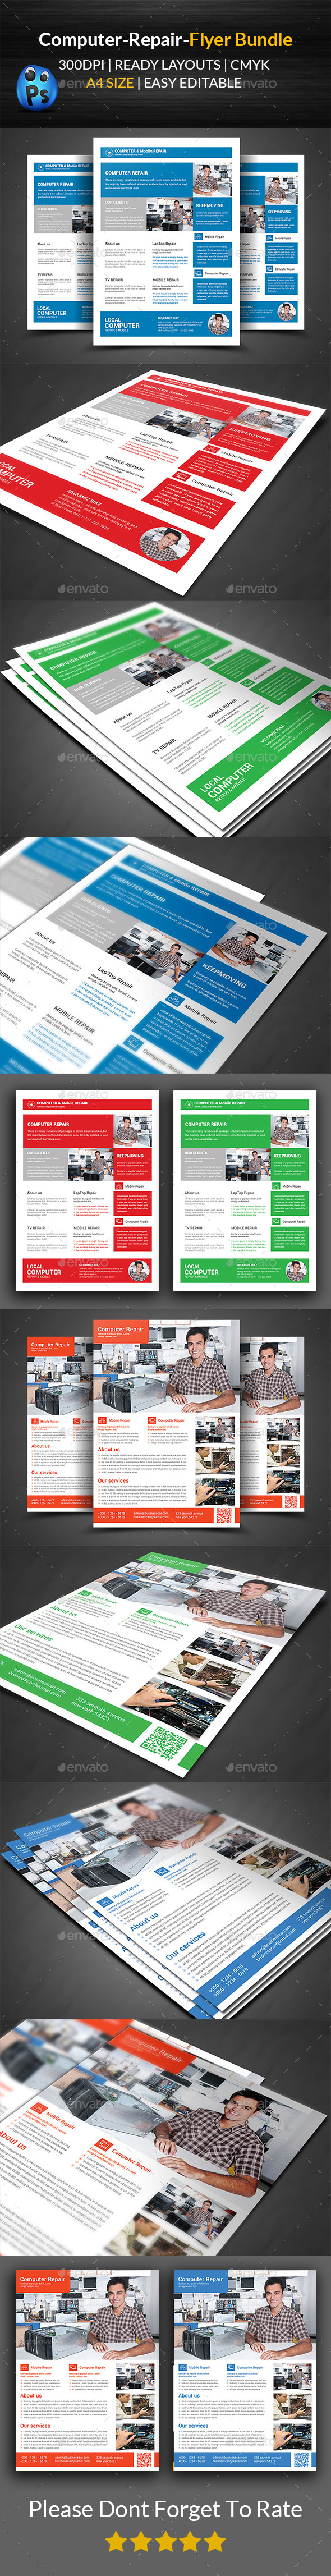 GraphicRiver Computer & Mobile Repair Flyer Bundle 11915238